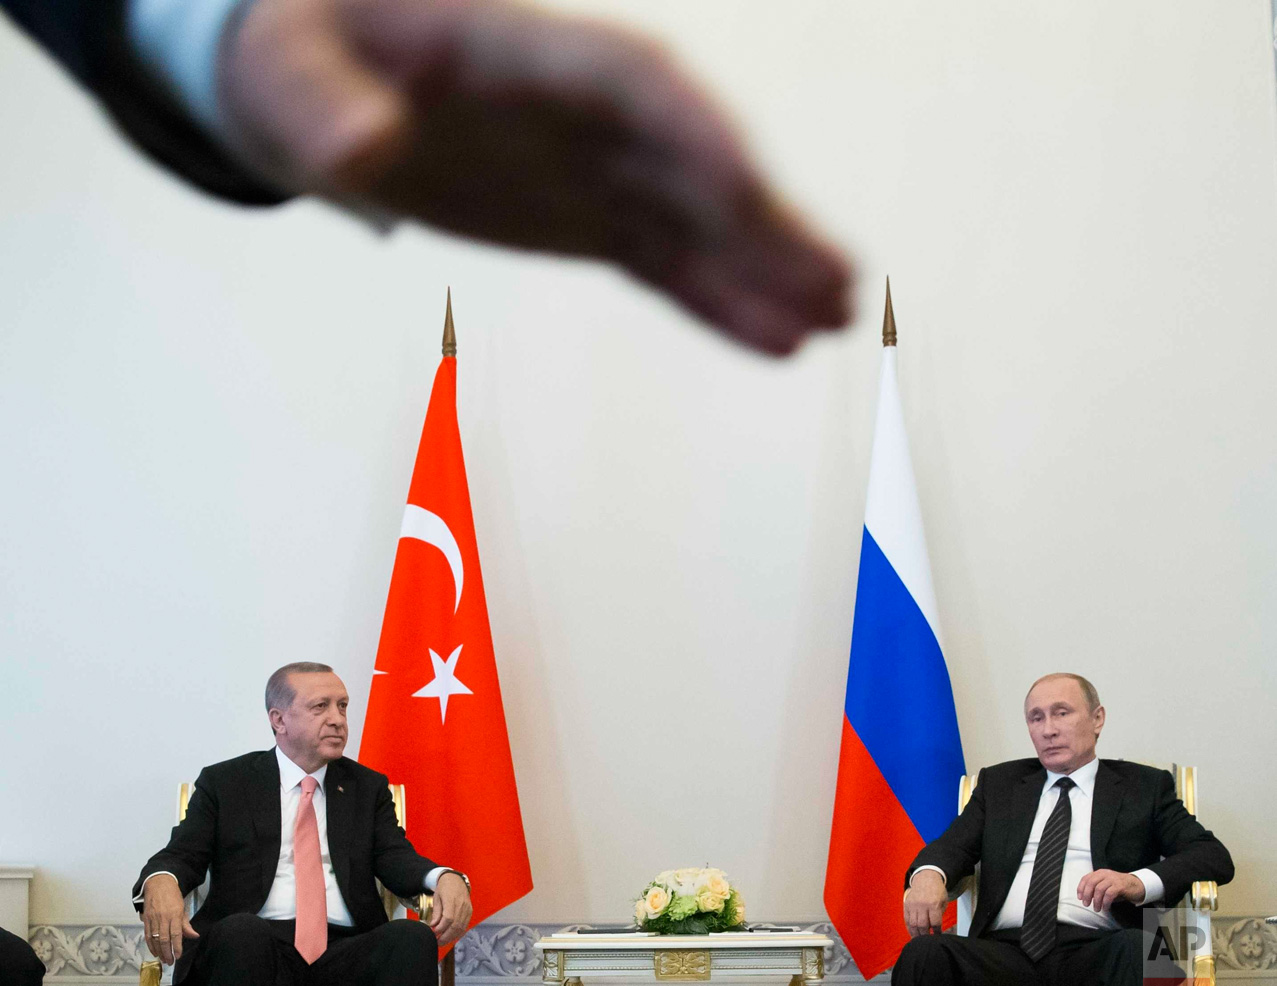 In this Tuesday, Aug. 9, 2016 photo, Russian President Vladimir Putin, right, and Turkish President Recep Tayyip Erdogan talk during their meeting, as a security member tries to stop photographers taking pictures, in the Konstantin palace outside St. Petersburg, Russia. (AP Photo/Alexander Zemlianichenko)